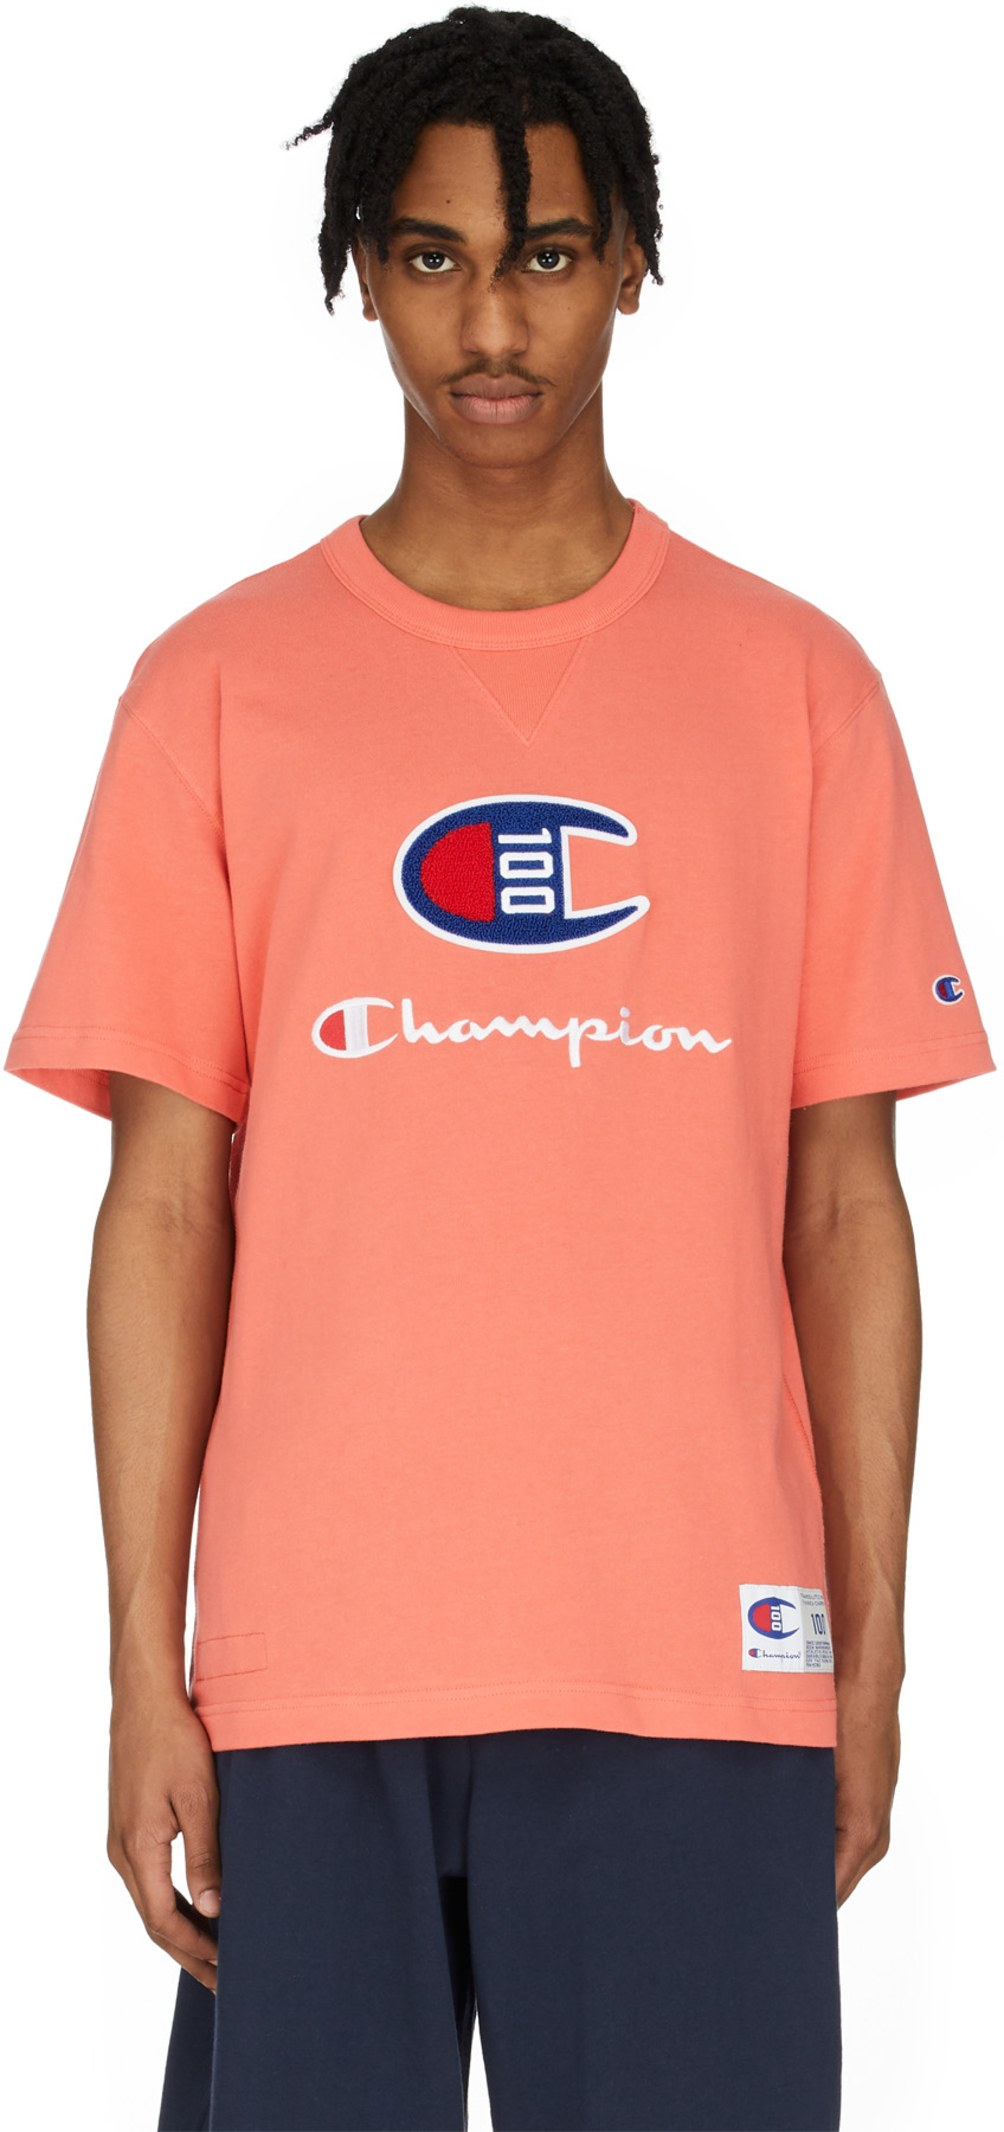 6650215ad Champion: C100 Chenille Logo T-Shirt - Groovy Papaya | influenceu